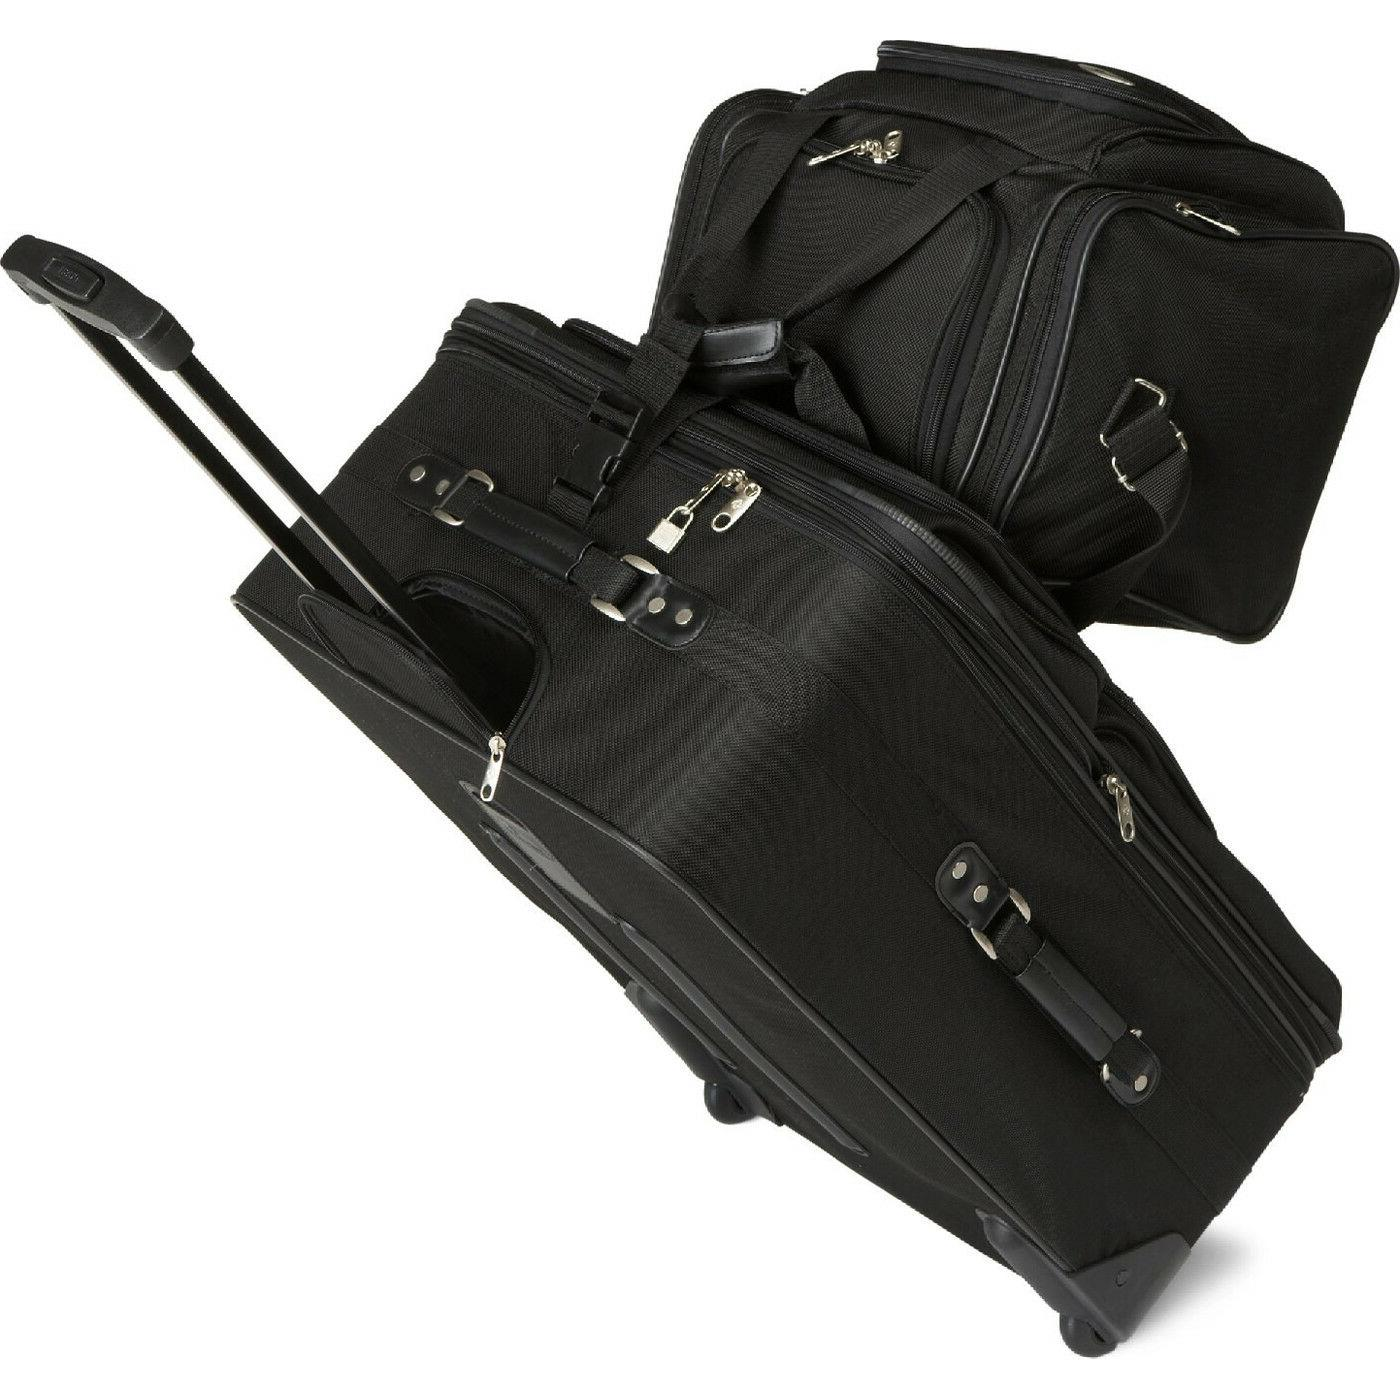 Samsonite Nested Luggage Suitcase Set - &